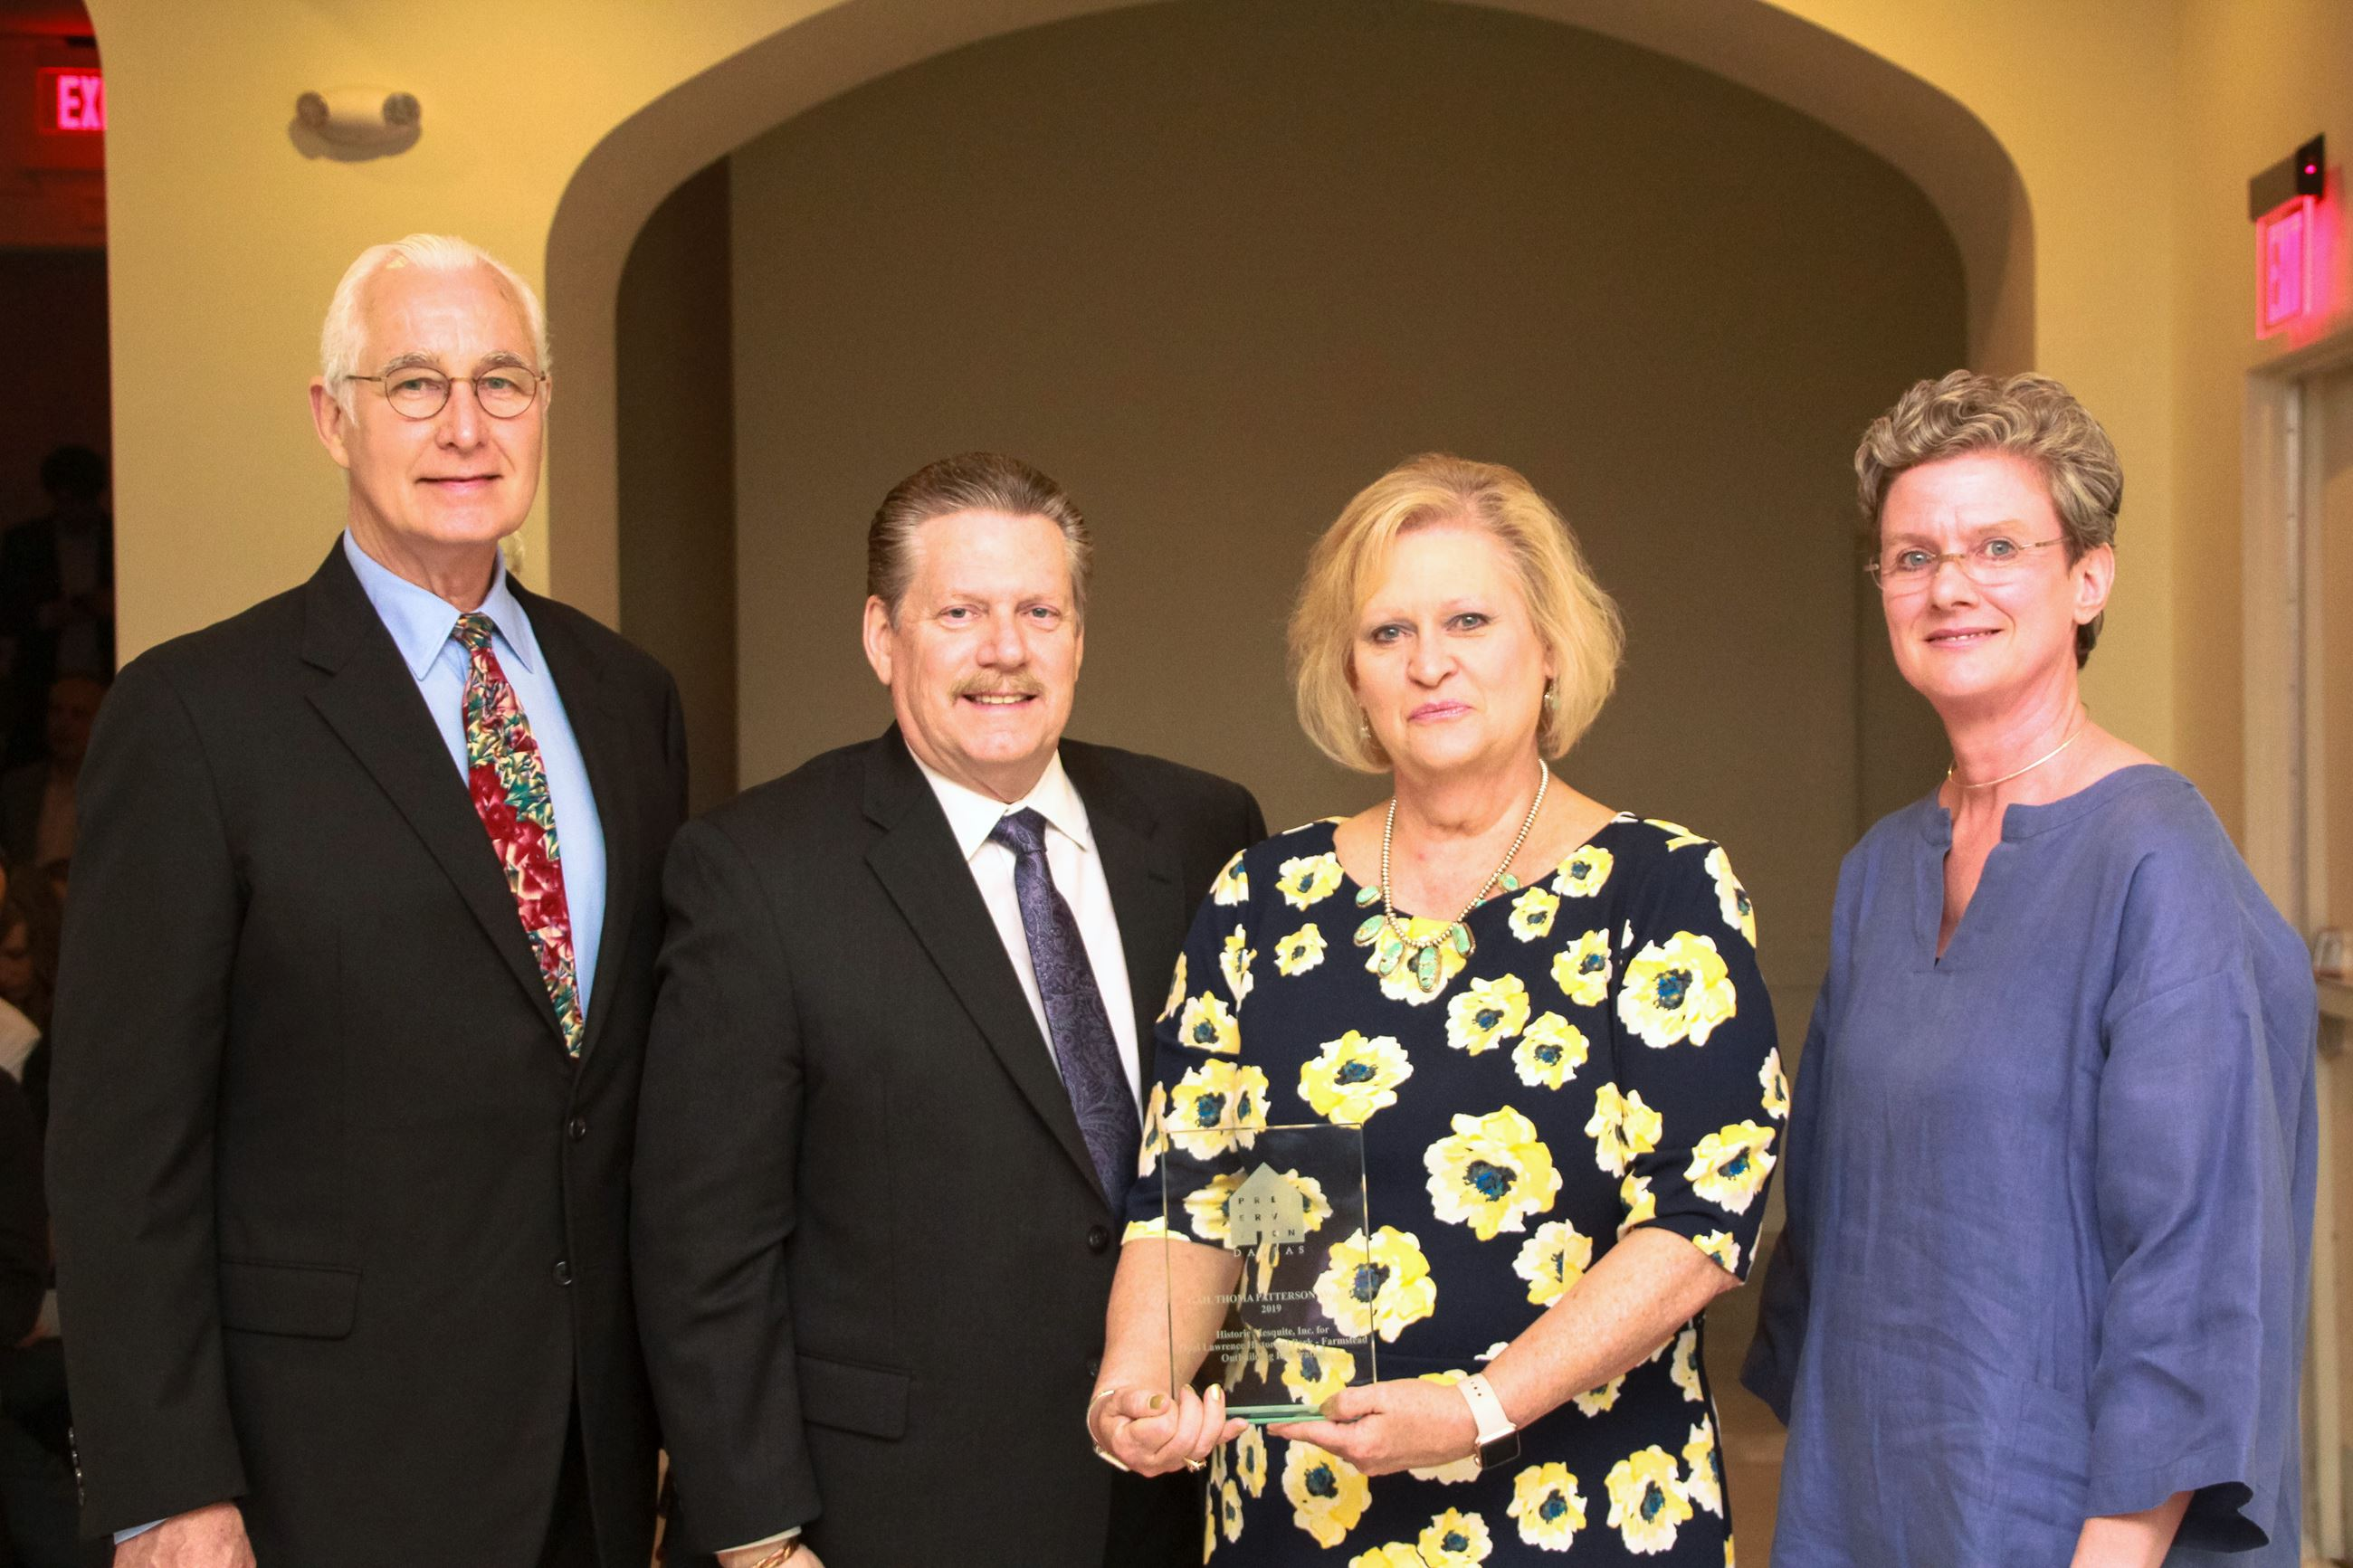 Ron Siebler, Mayor Mike Anderson, Charlene Orr and Joanna Hampton